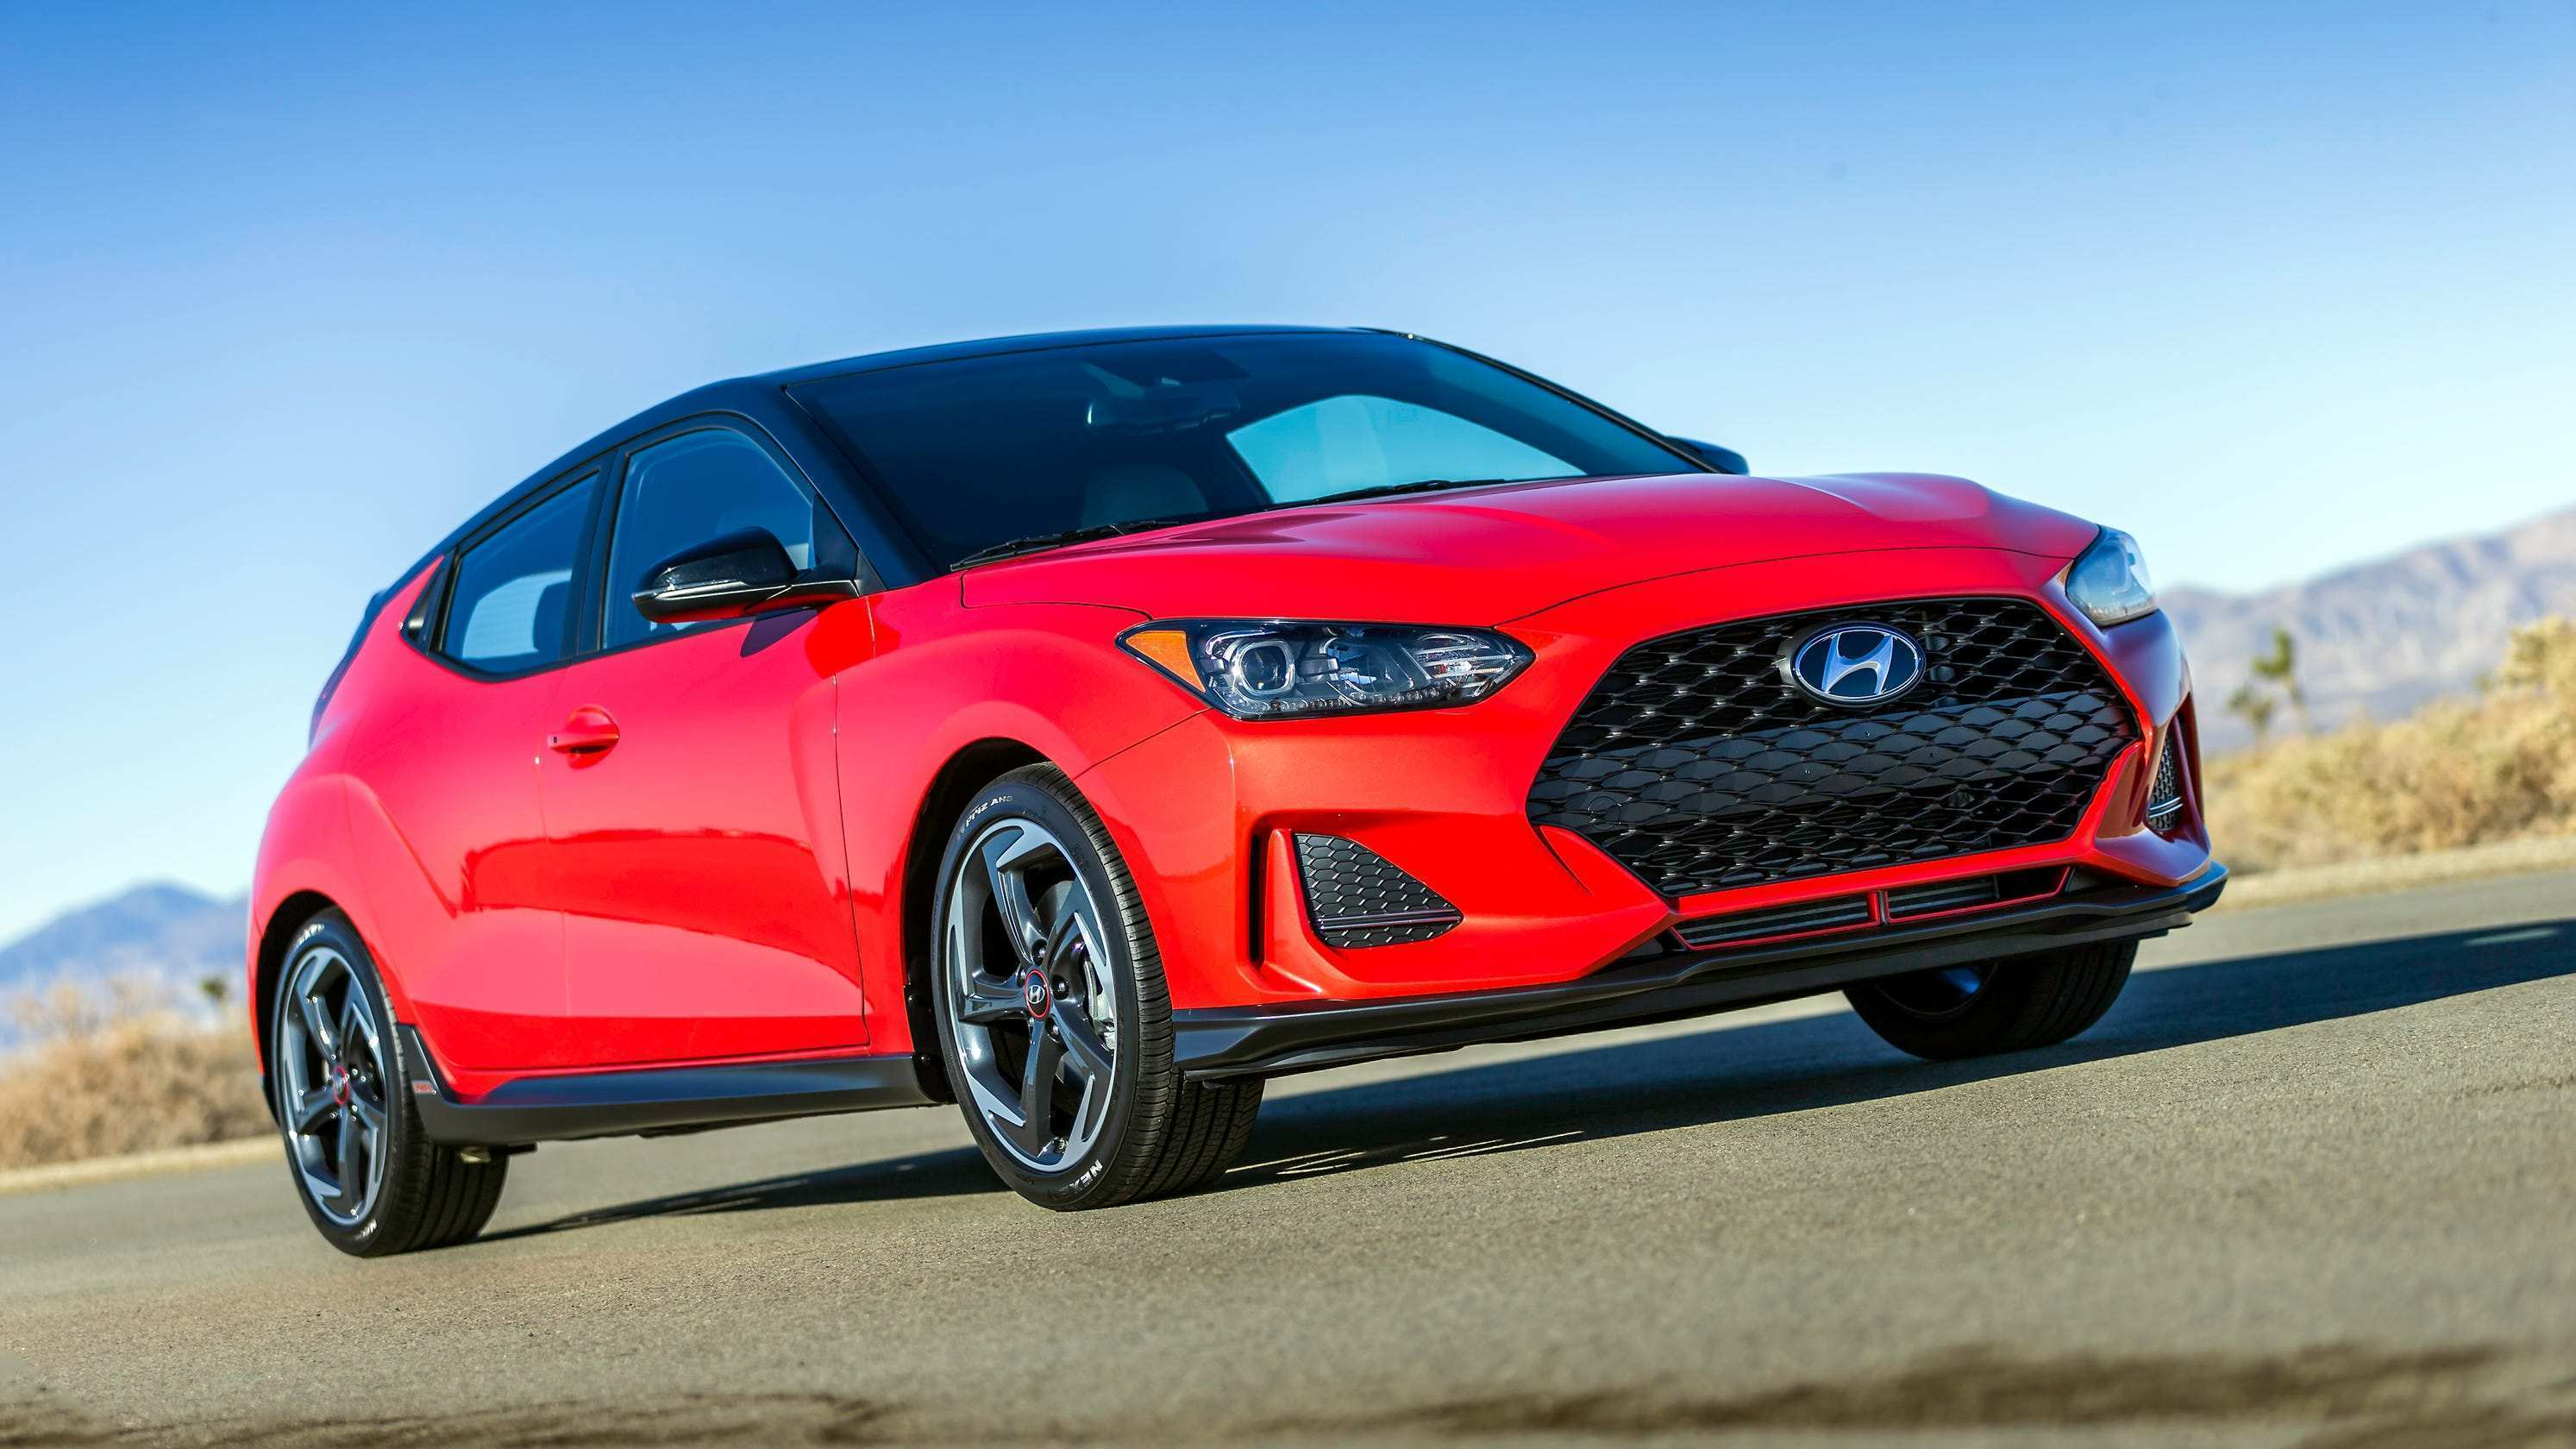 74 All New 2019 Hyundai Veloster Turbo Specs